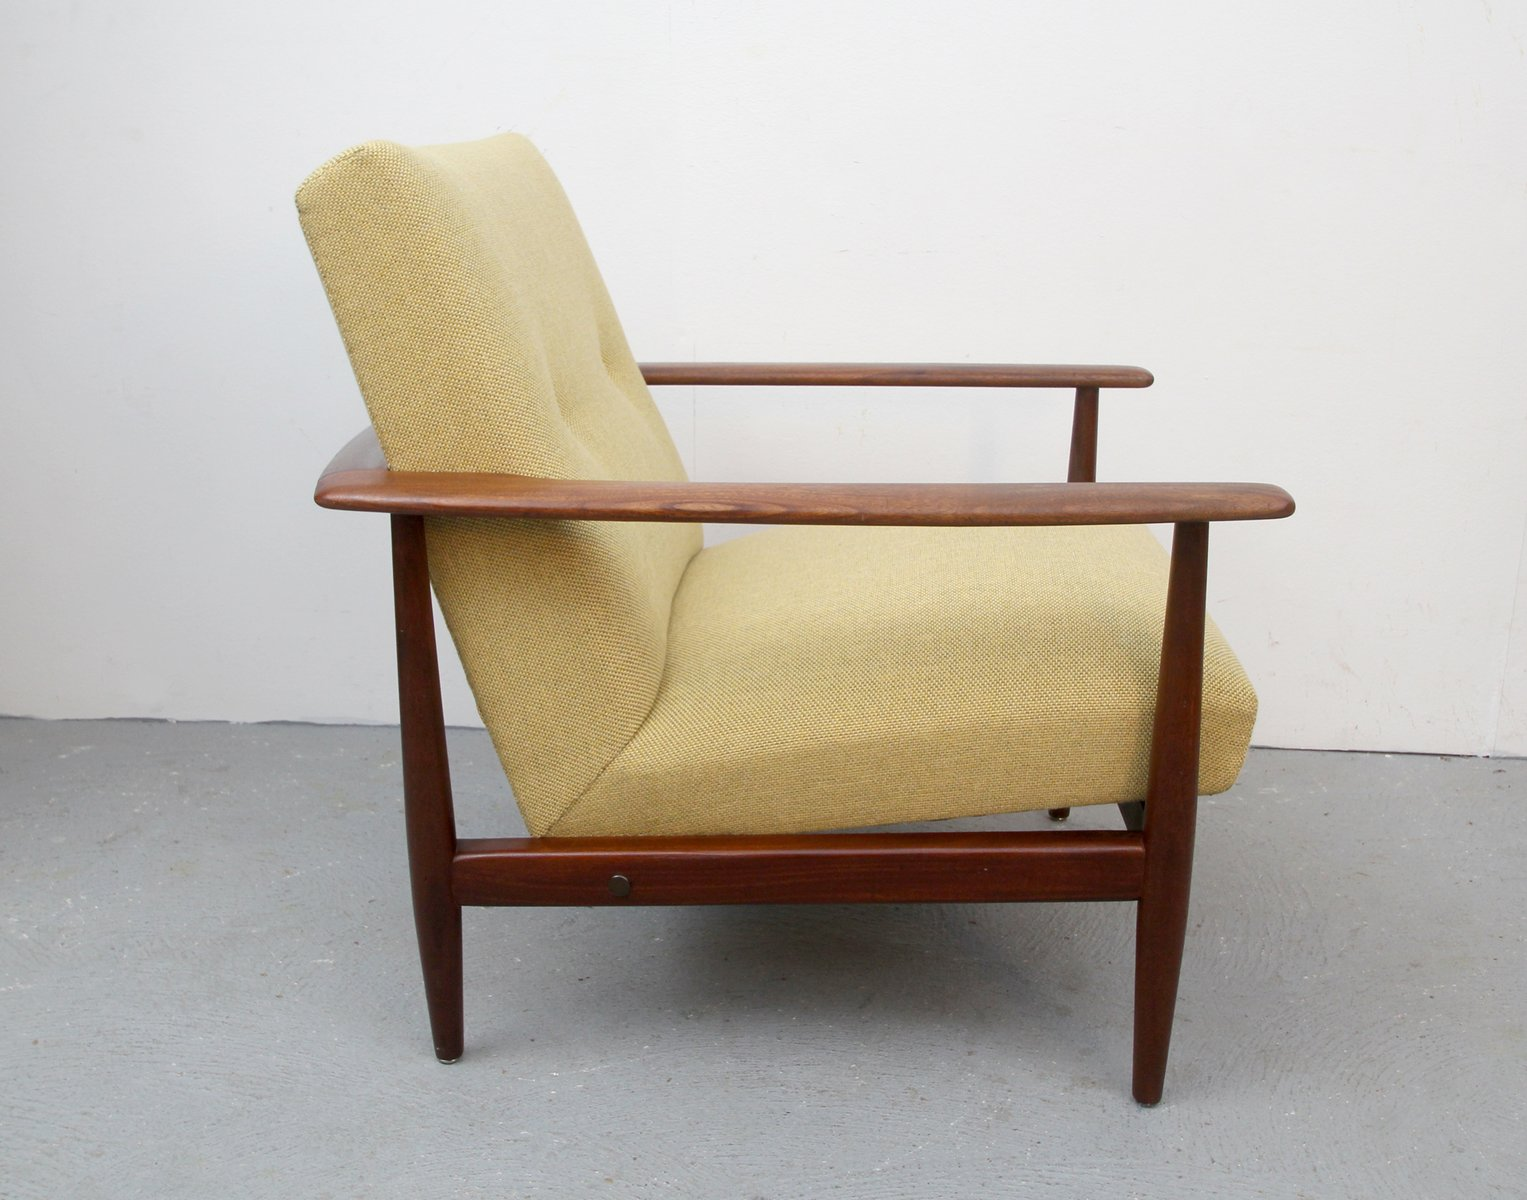 Antique upholstered rocking chair - Vintage Teak Armchair With Yellow Upholstery 1960s